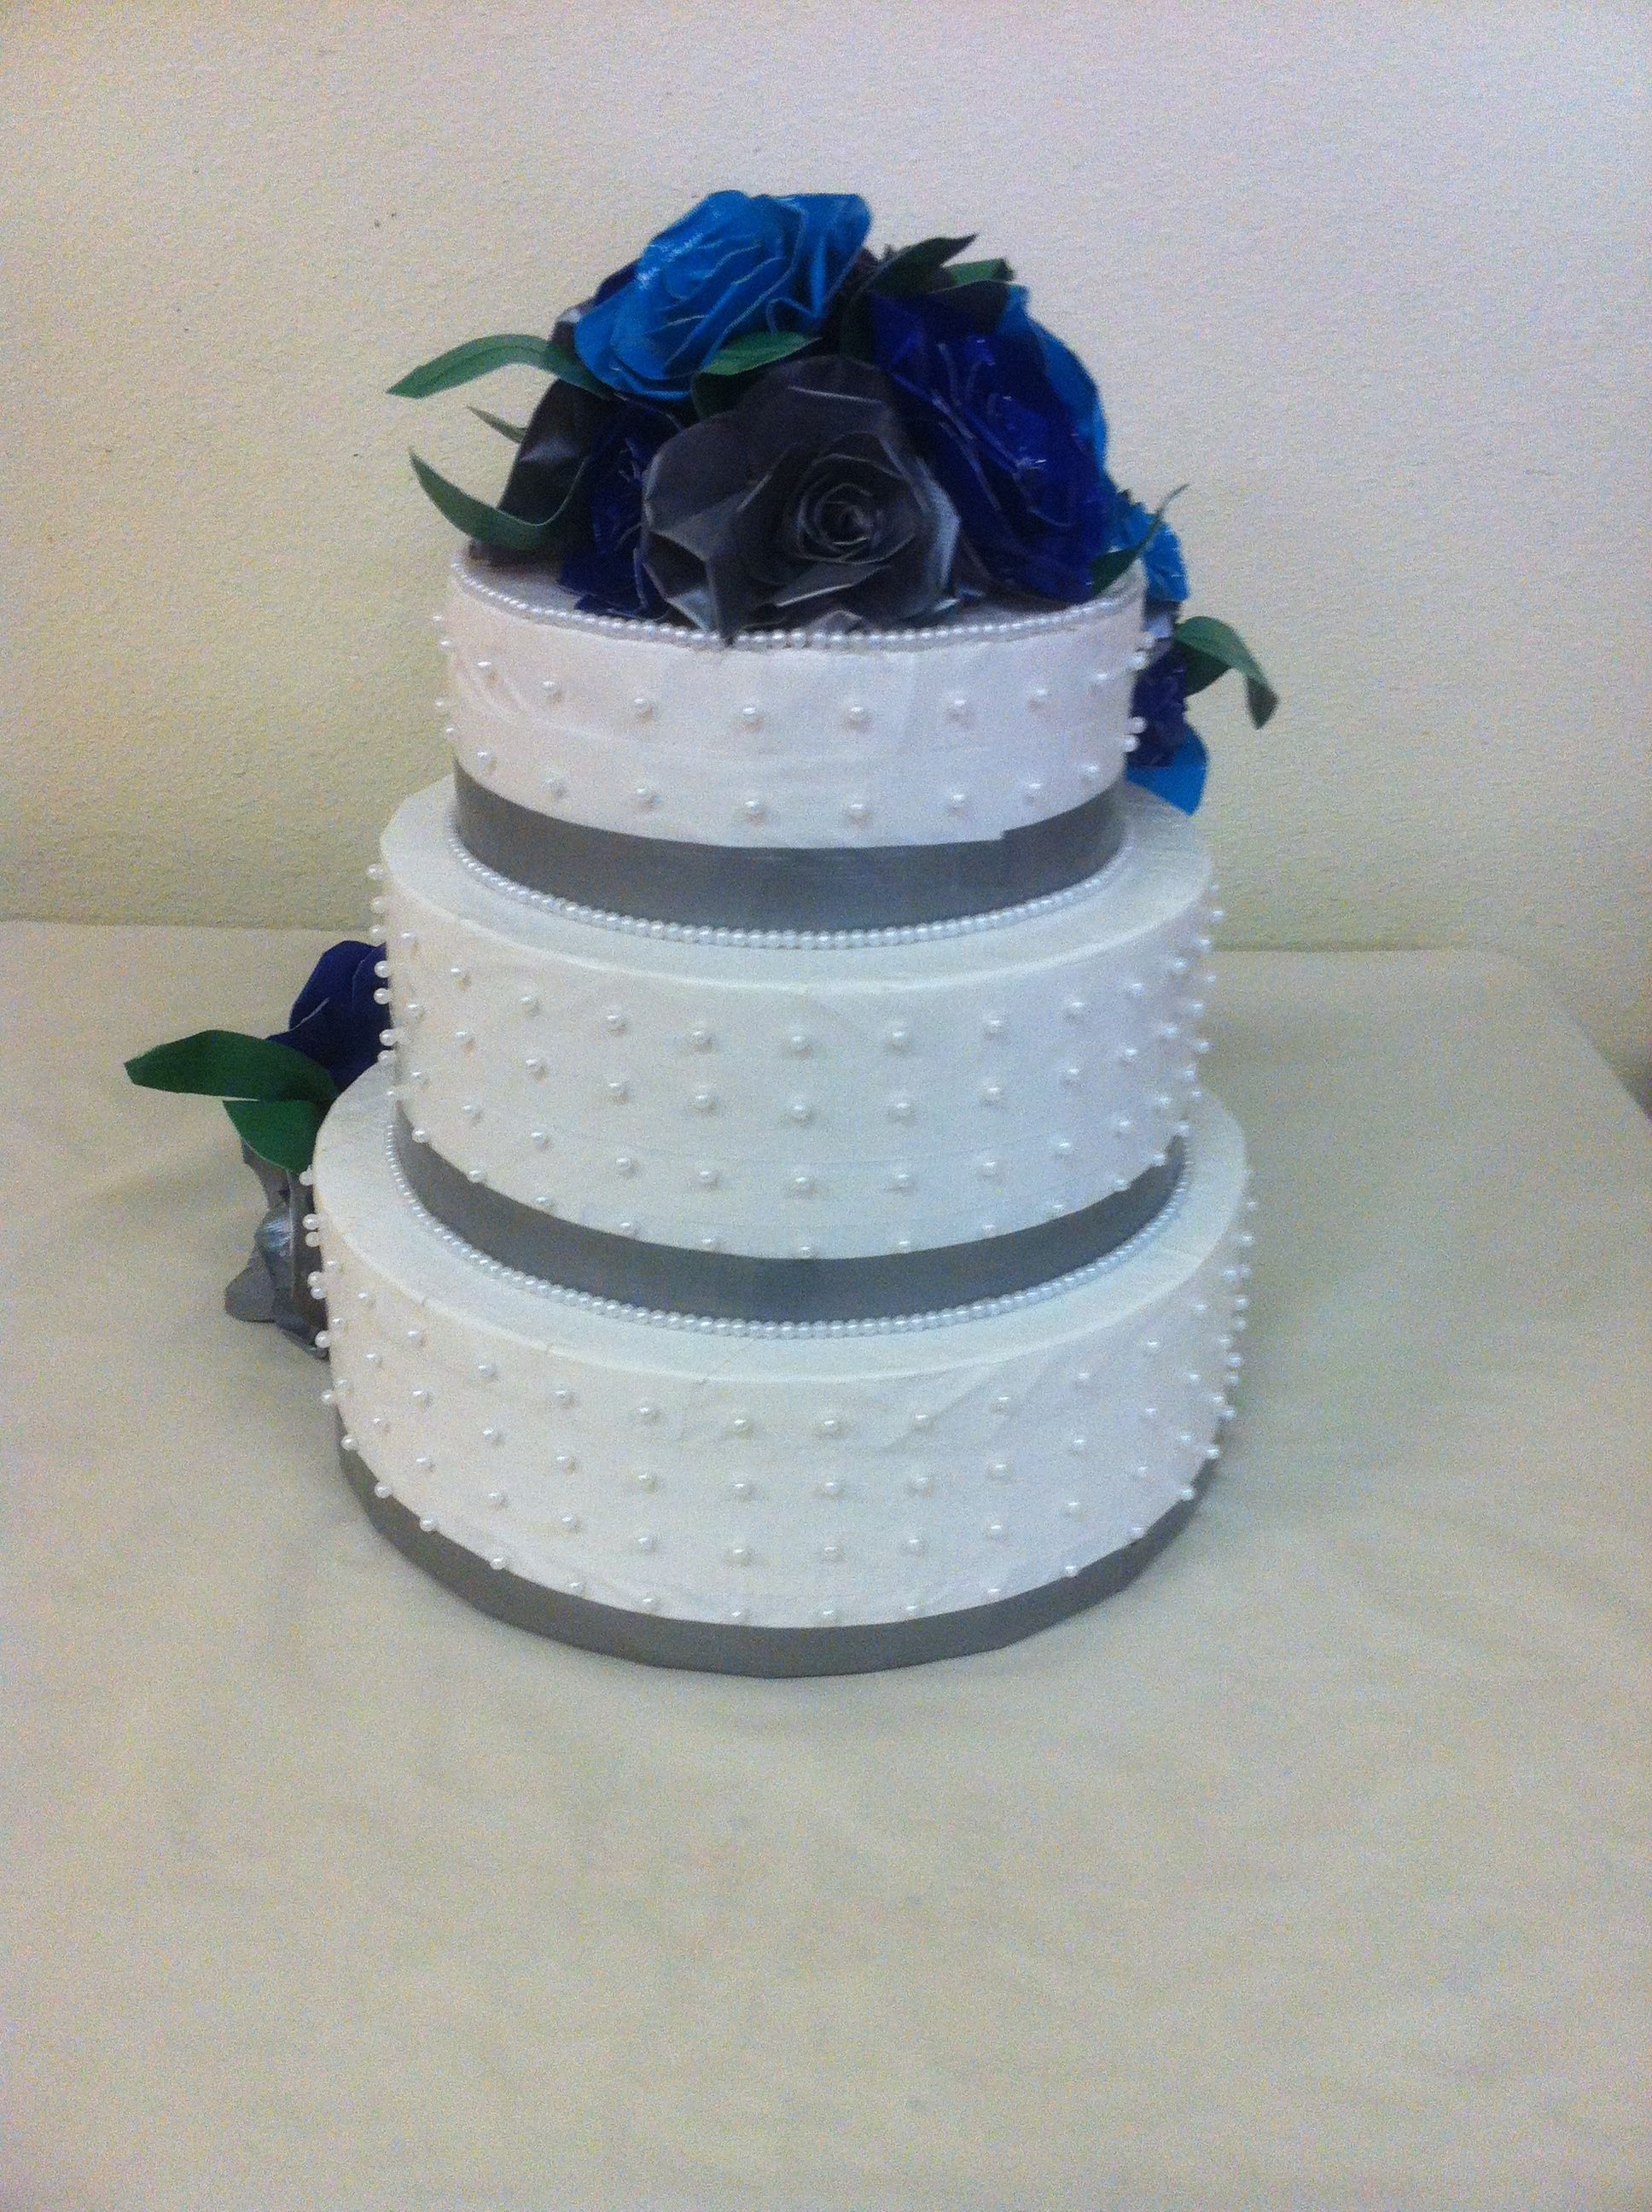 The other side of the Duct Tape Wedding Cake and decorated with pearls too!